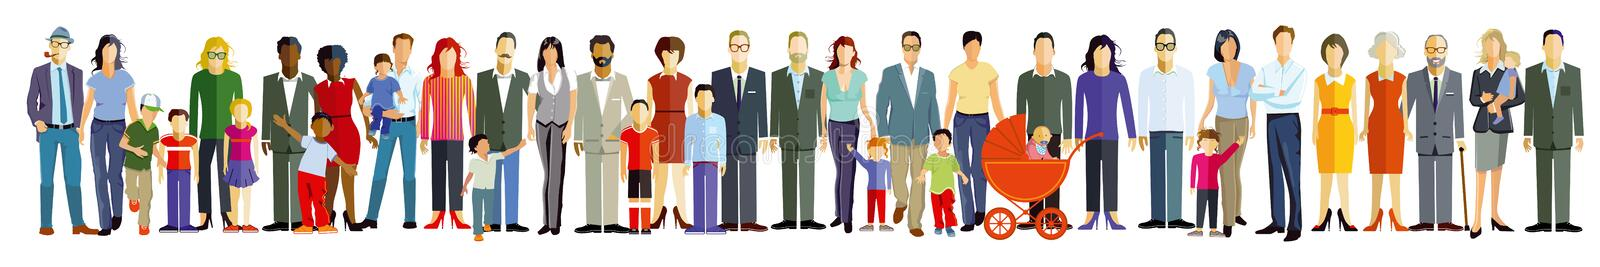 Drawing of people in line. A drawing of people with diverse ethnicities and ages in a line